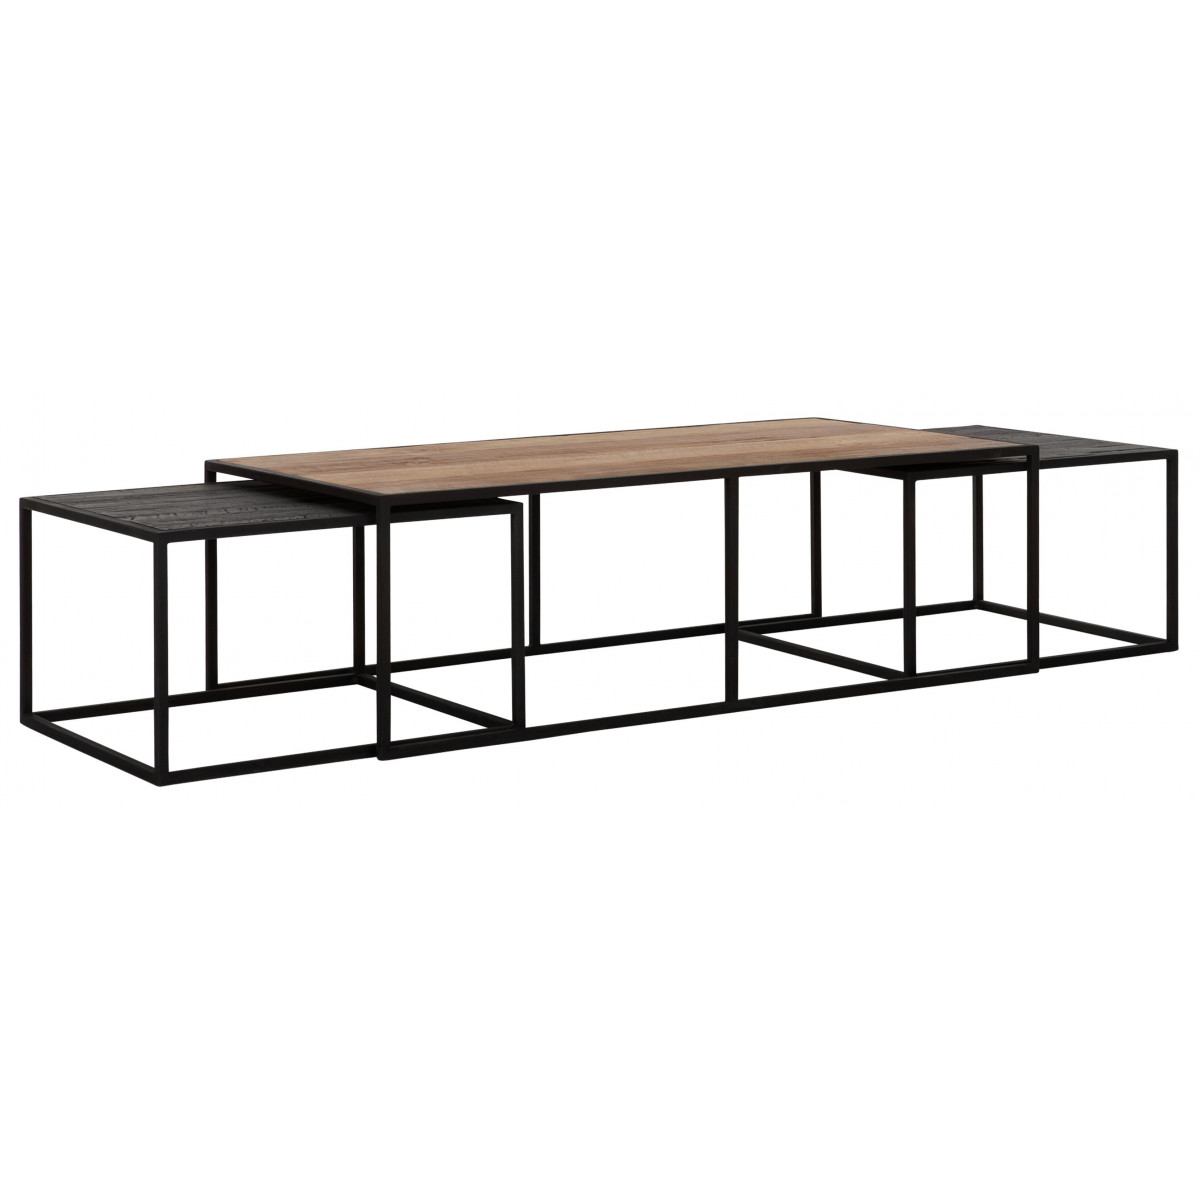 Cosmo Rectangular Teak And Iron Coffee Table Dtp Home Tentation